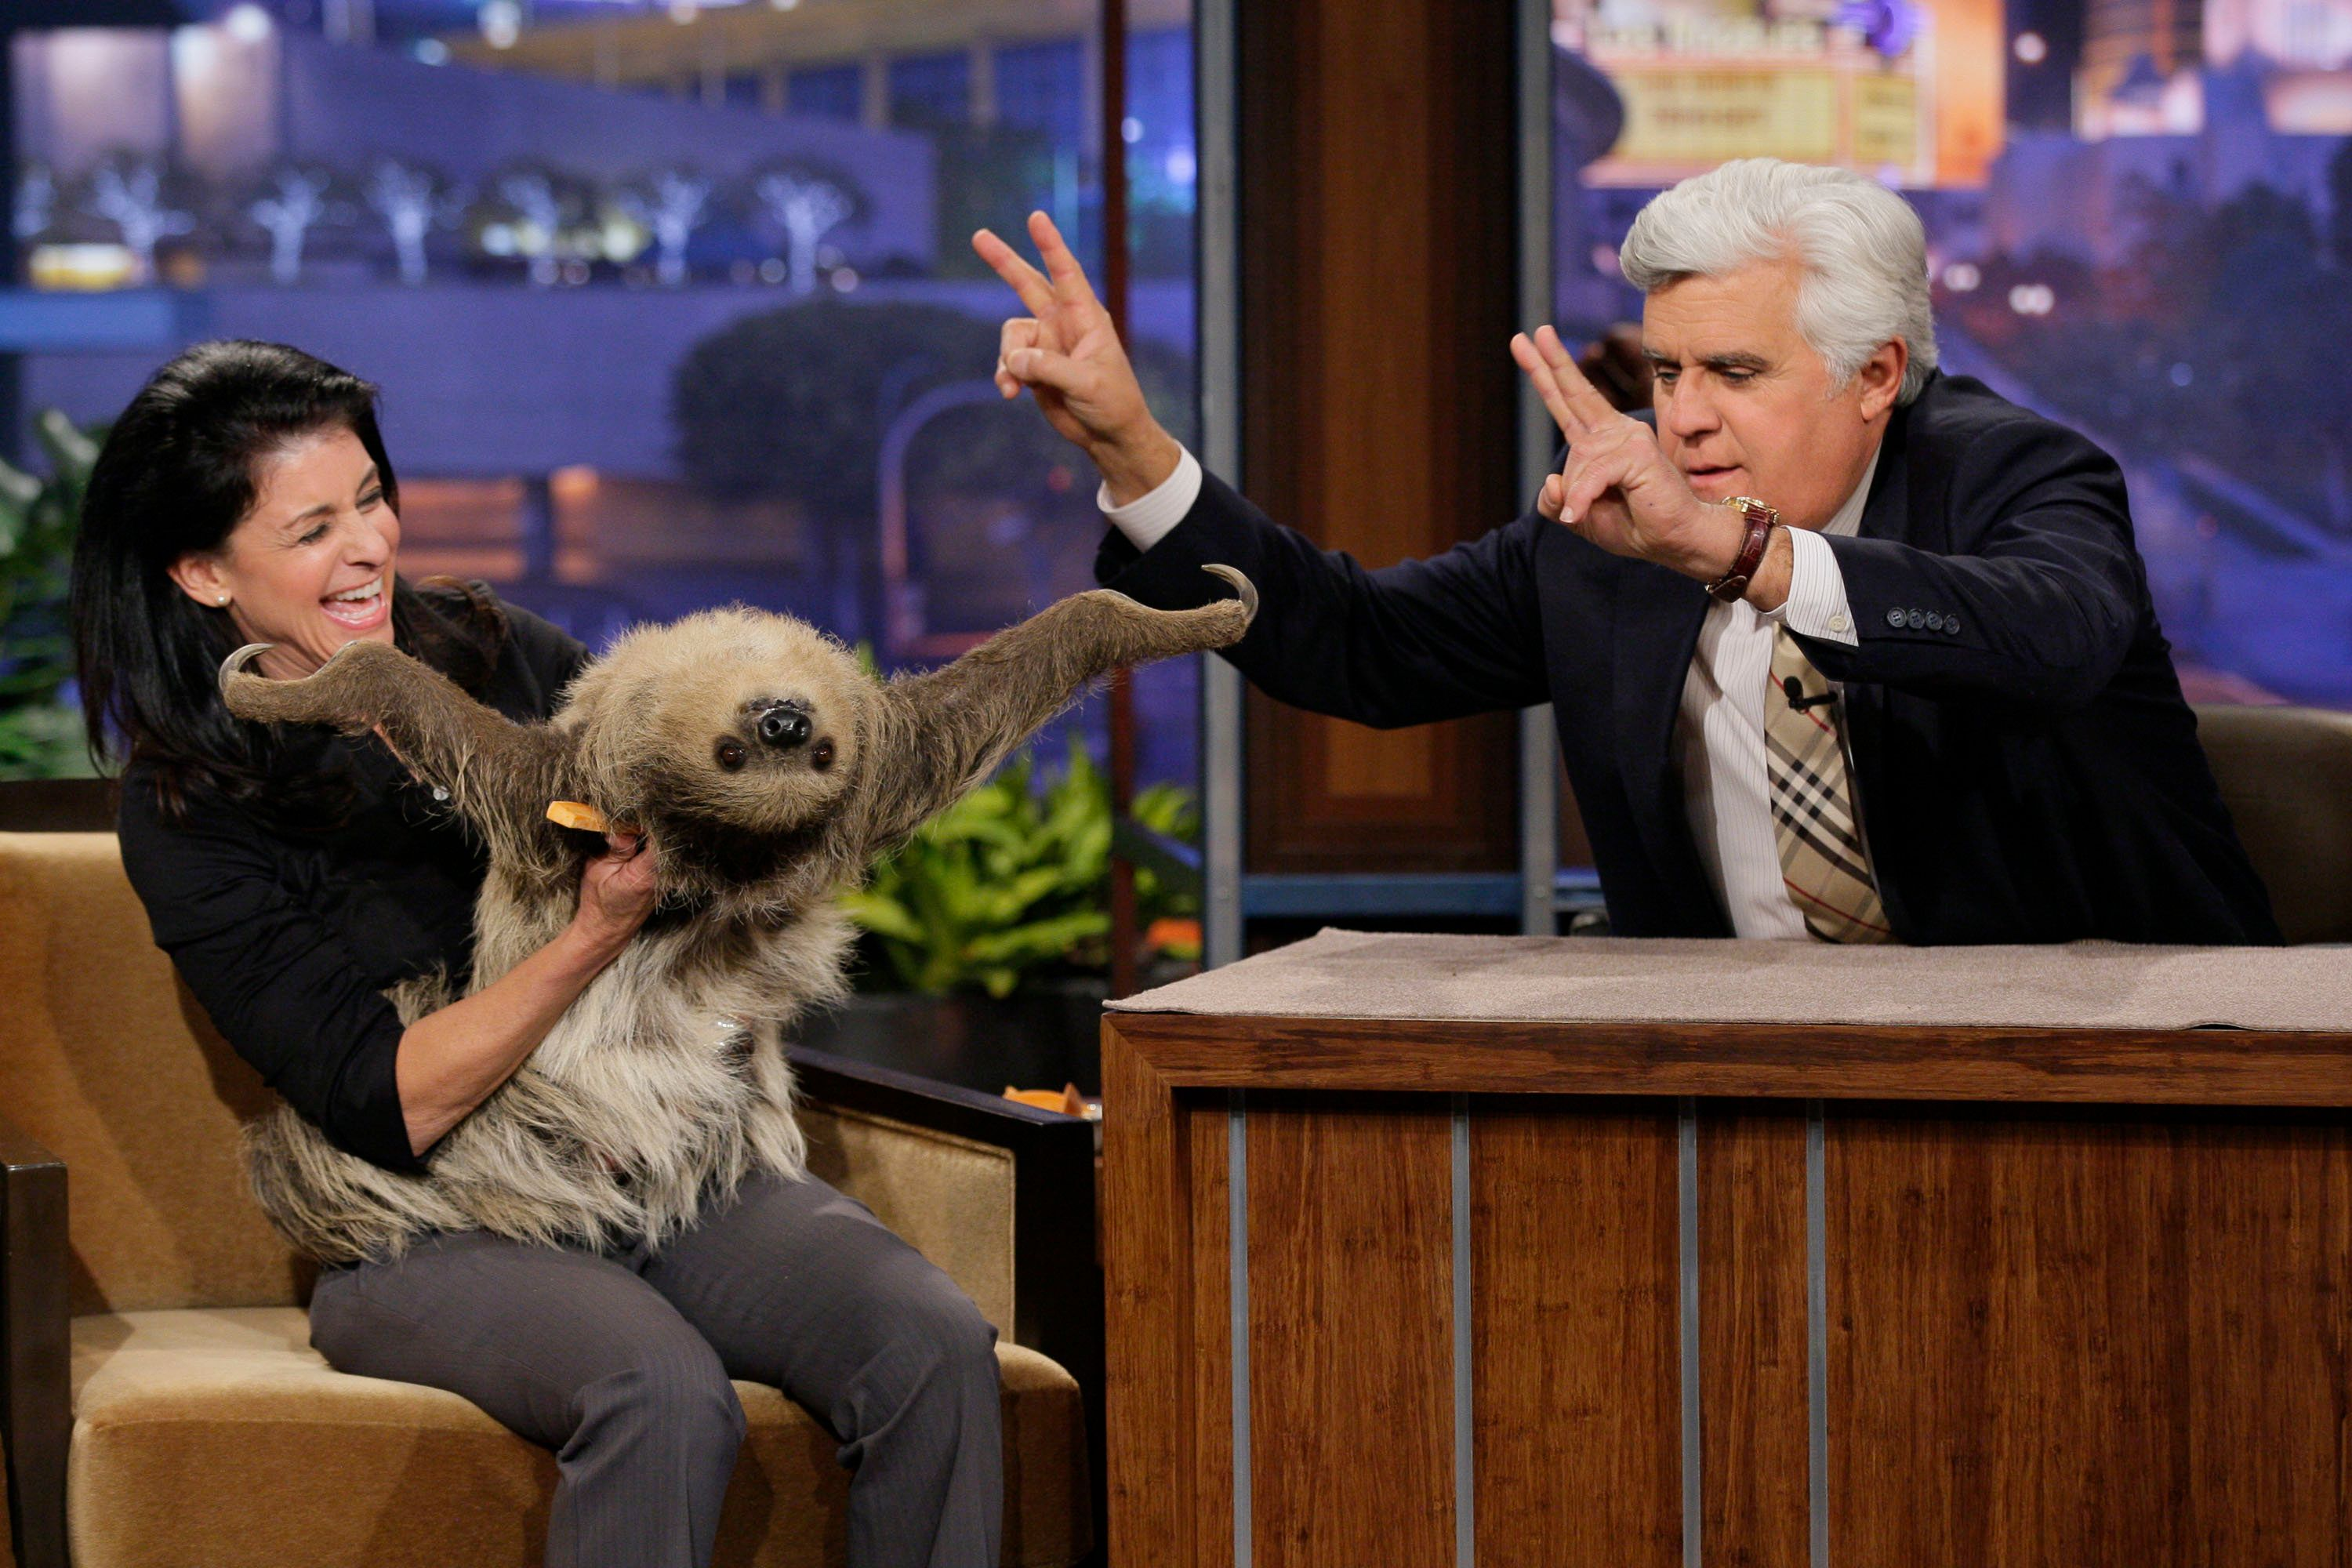 THE TONIGHT SHOW WITH JAY LENO -- Episode 4439 -- Pictured: (l-r) Animal expert Julie Scardina with a sloth during an interview with host Jay Leno on April 5, 2013 -- (Photo by: Paul Drinkwater/NBC/NBCU Photo Bank via Getty Images)